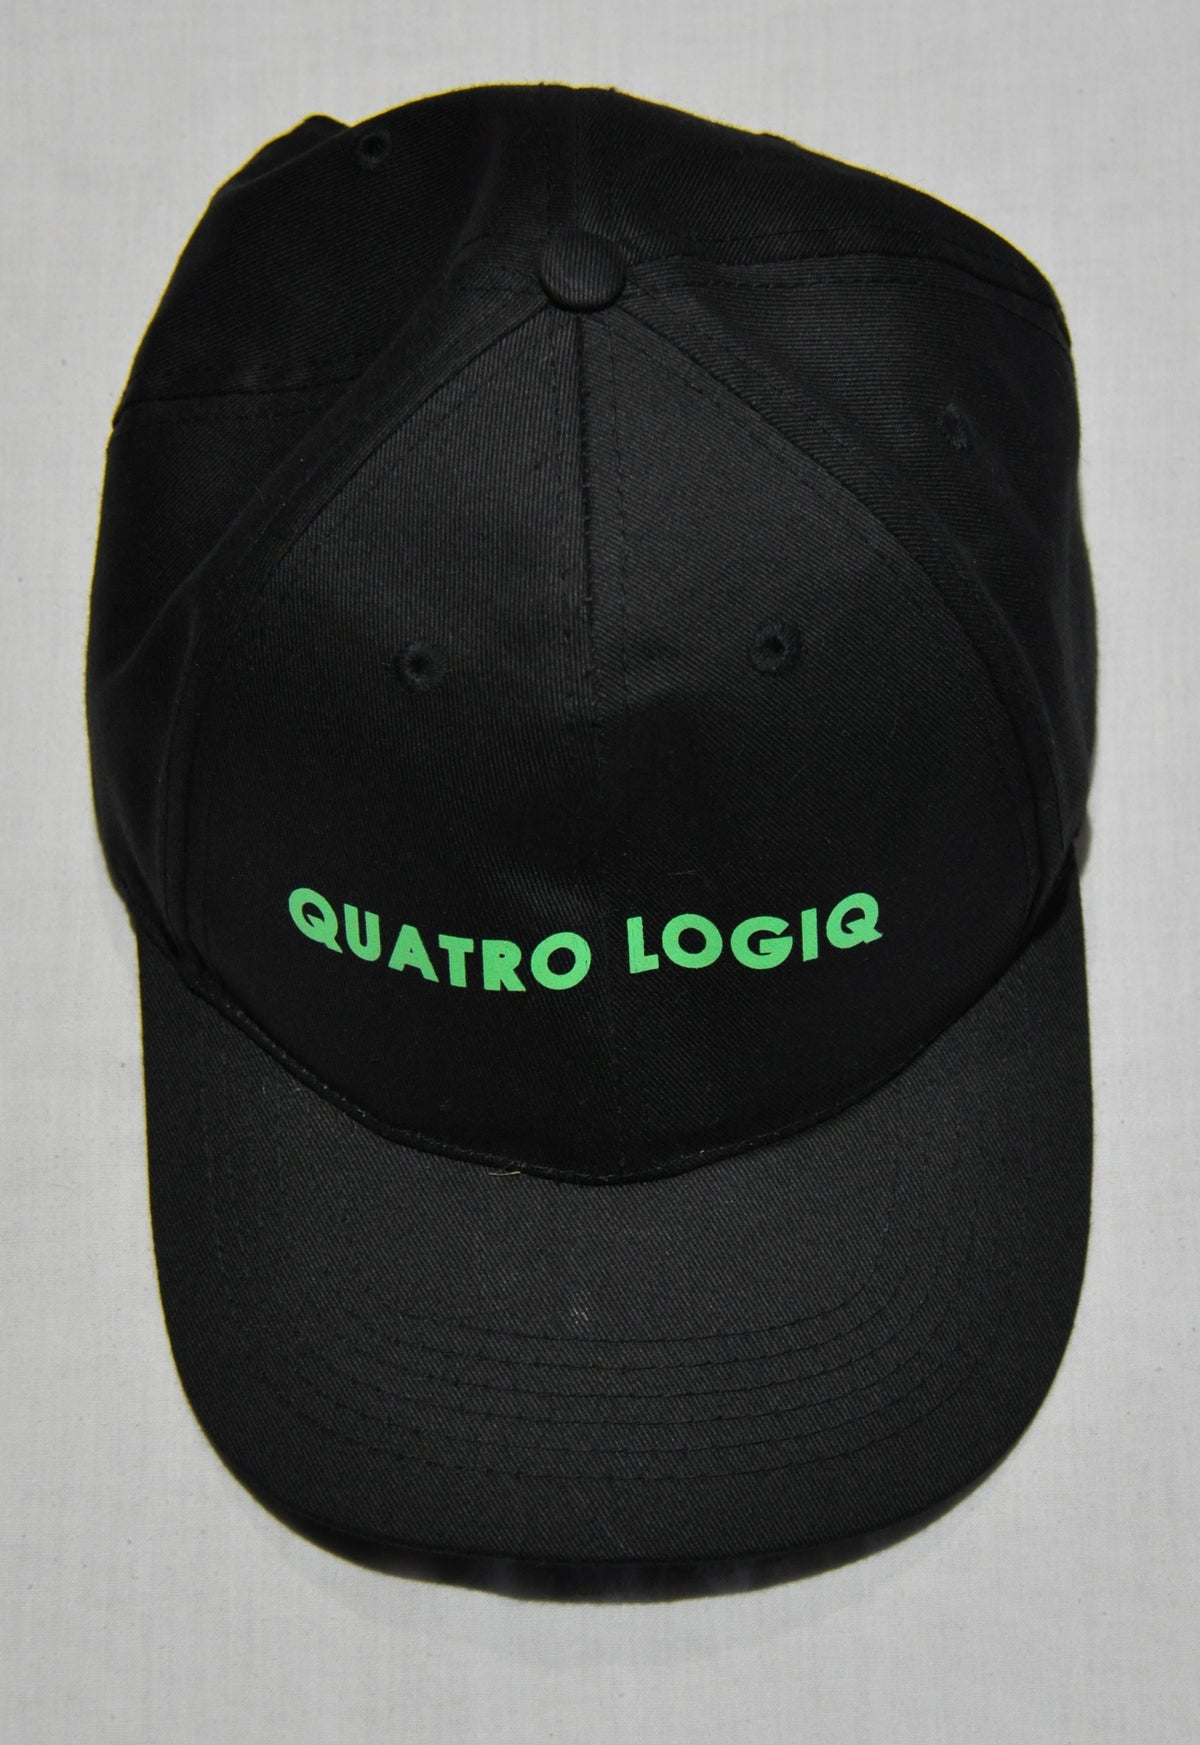 Black Quatro Logiq adjustable baseball cap made from quality material and super comfortable.